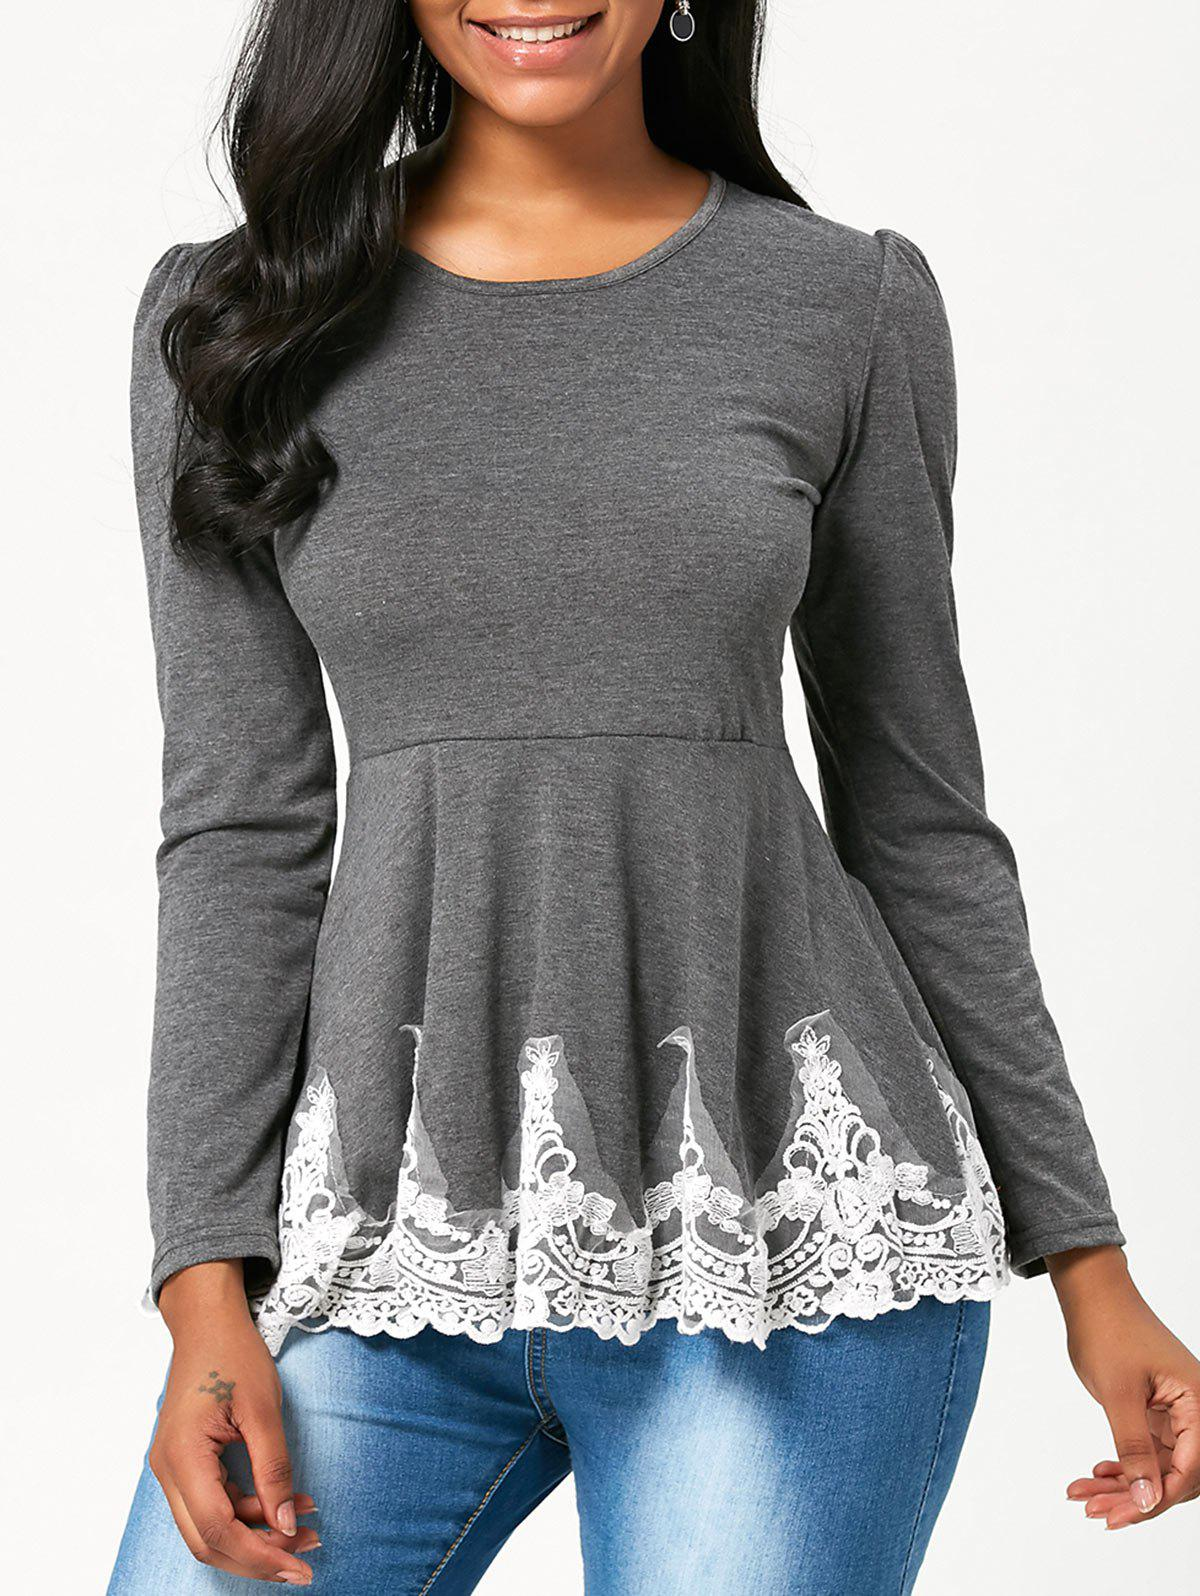 High Waisted Lace Trim Long Sleeve T-shirt - GRAY L